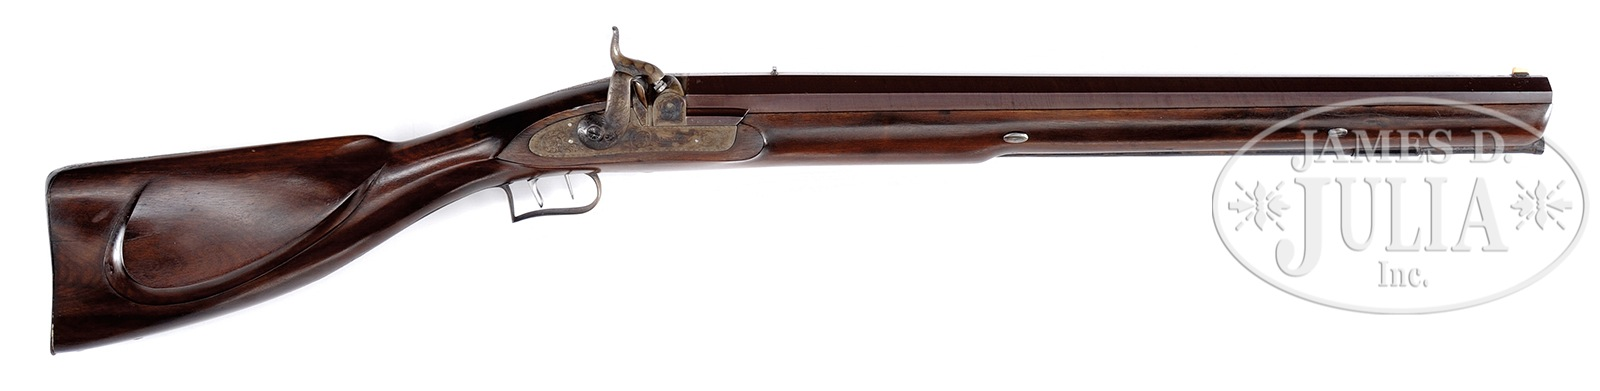 E.M. Reilly Four Bore Belted Ball Percussion Rifle. (Picture courtesy James D. Julia Inc.).